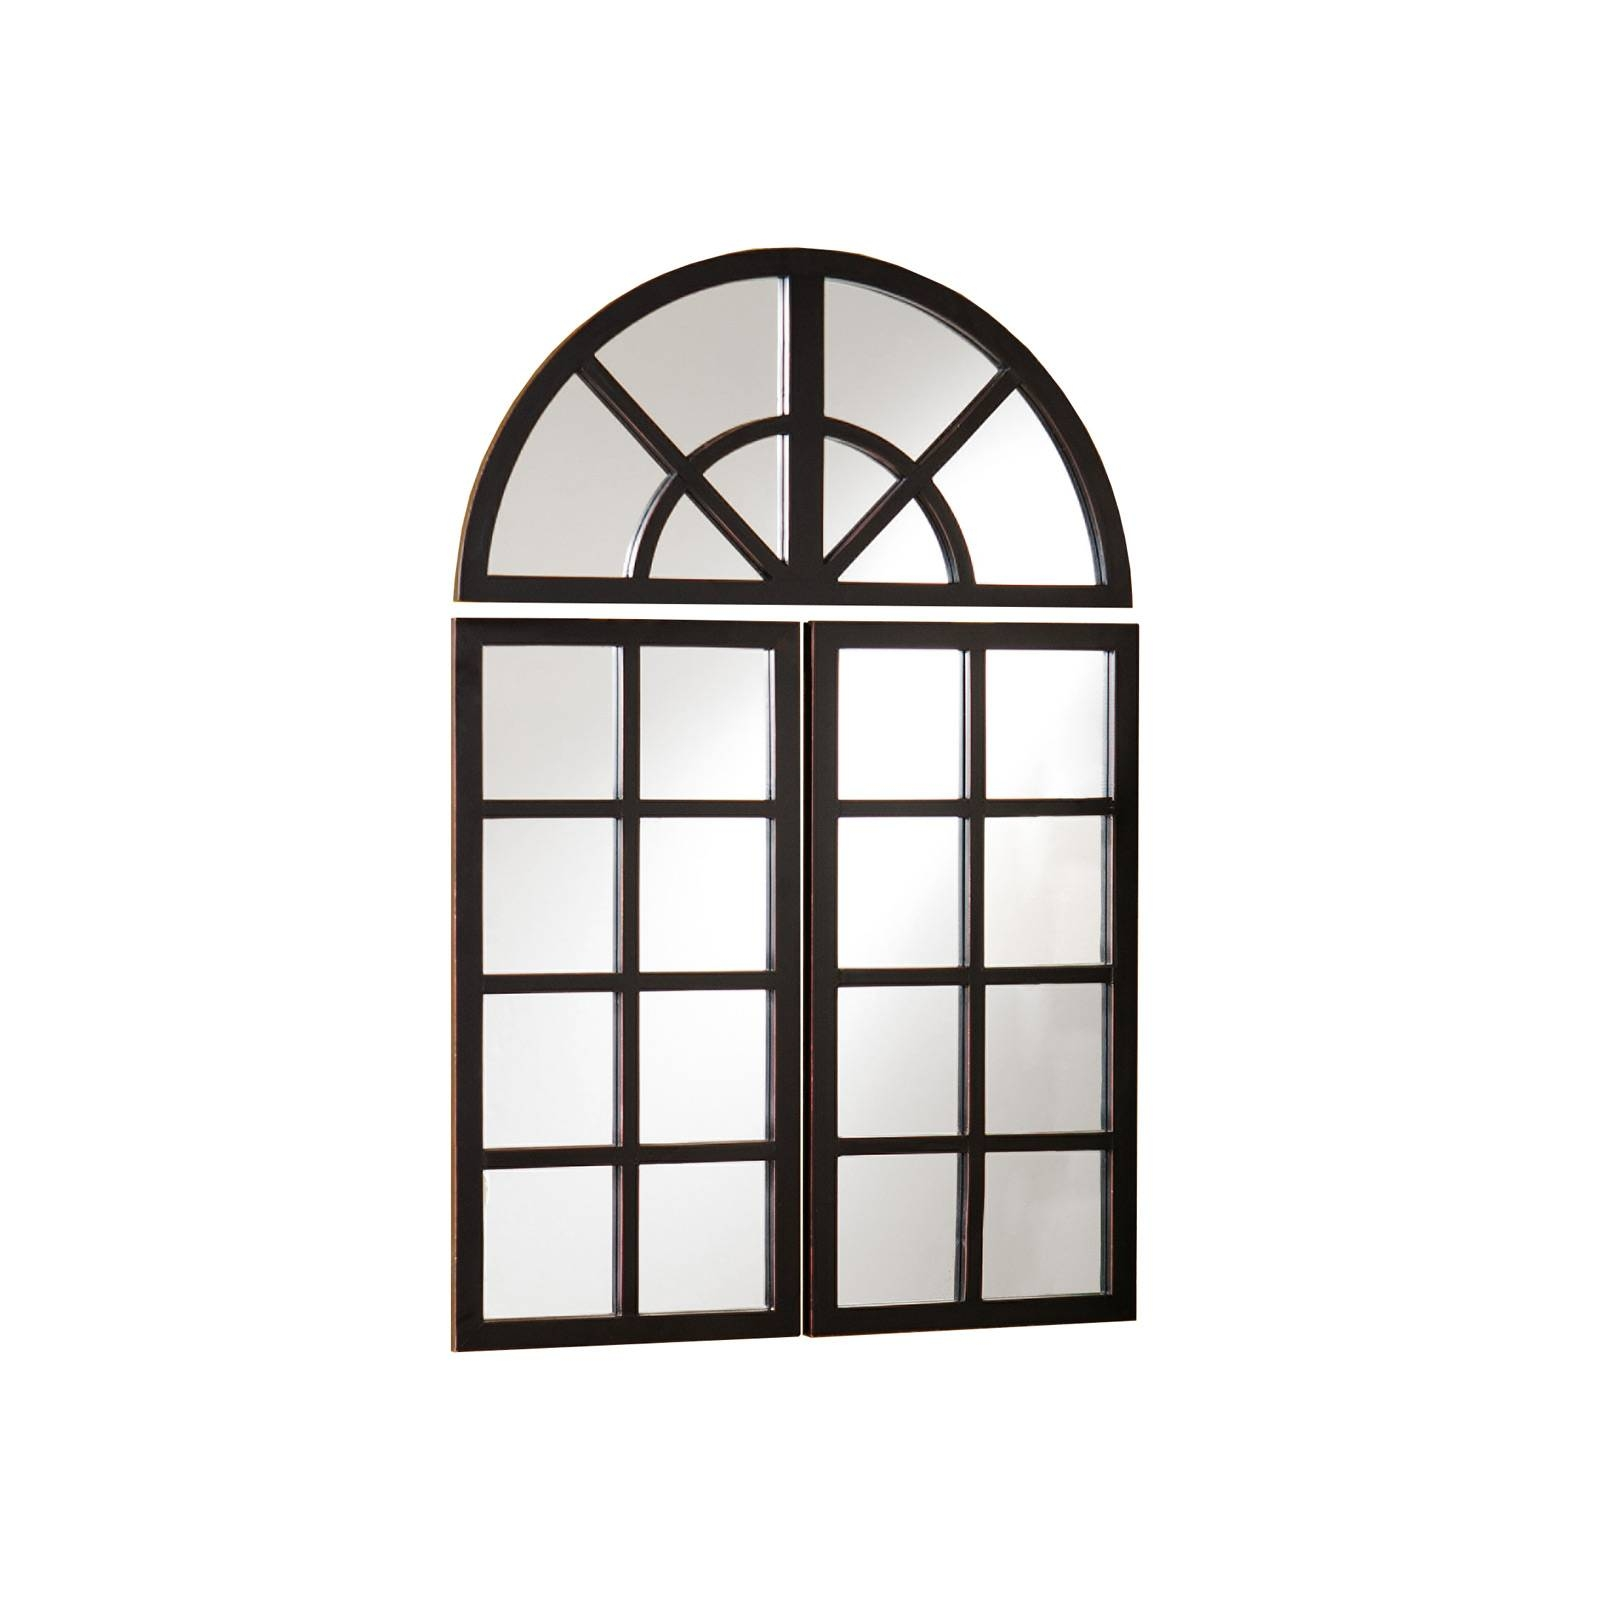 Awesome Decorating Arched Windows Gallery - Decorating Interior ...